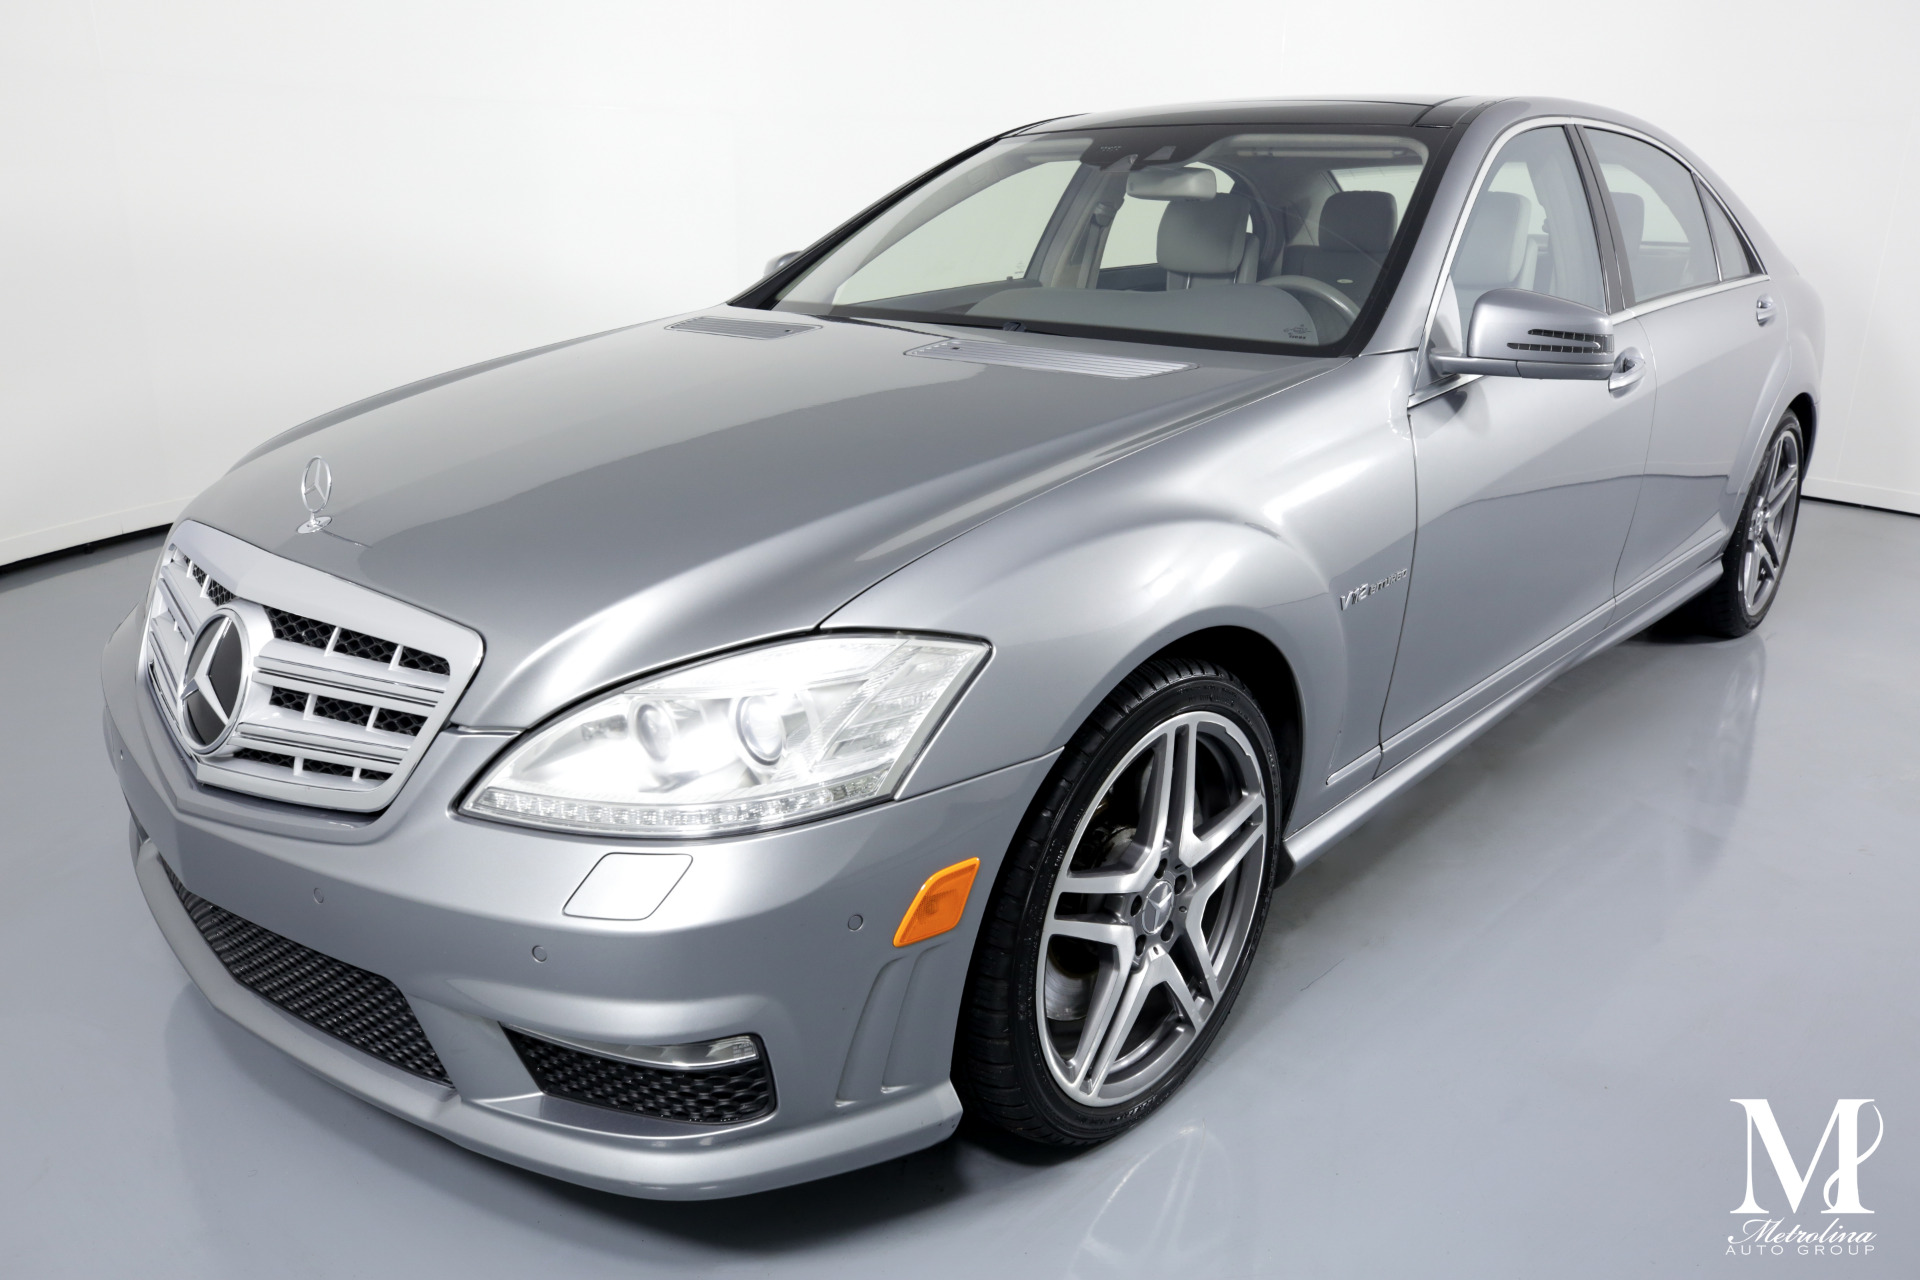 Used 2010 Mercedes-Benz S-Class S 65 AMG for sale Sold at Metrolina Auto Group in Charlotte NC 28217 - 4